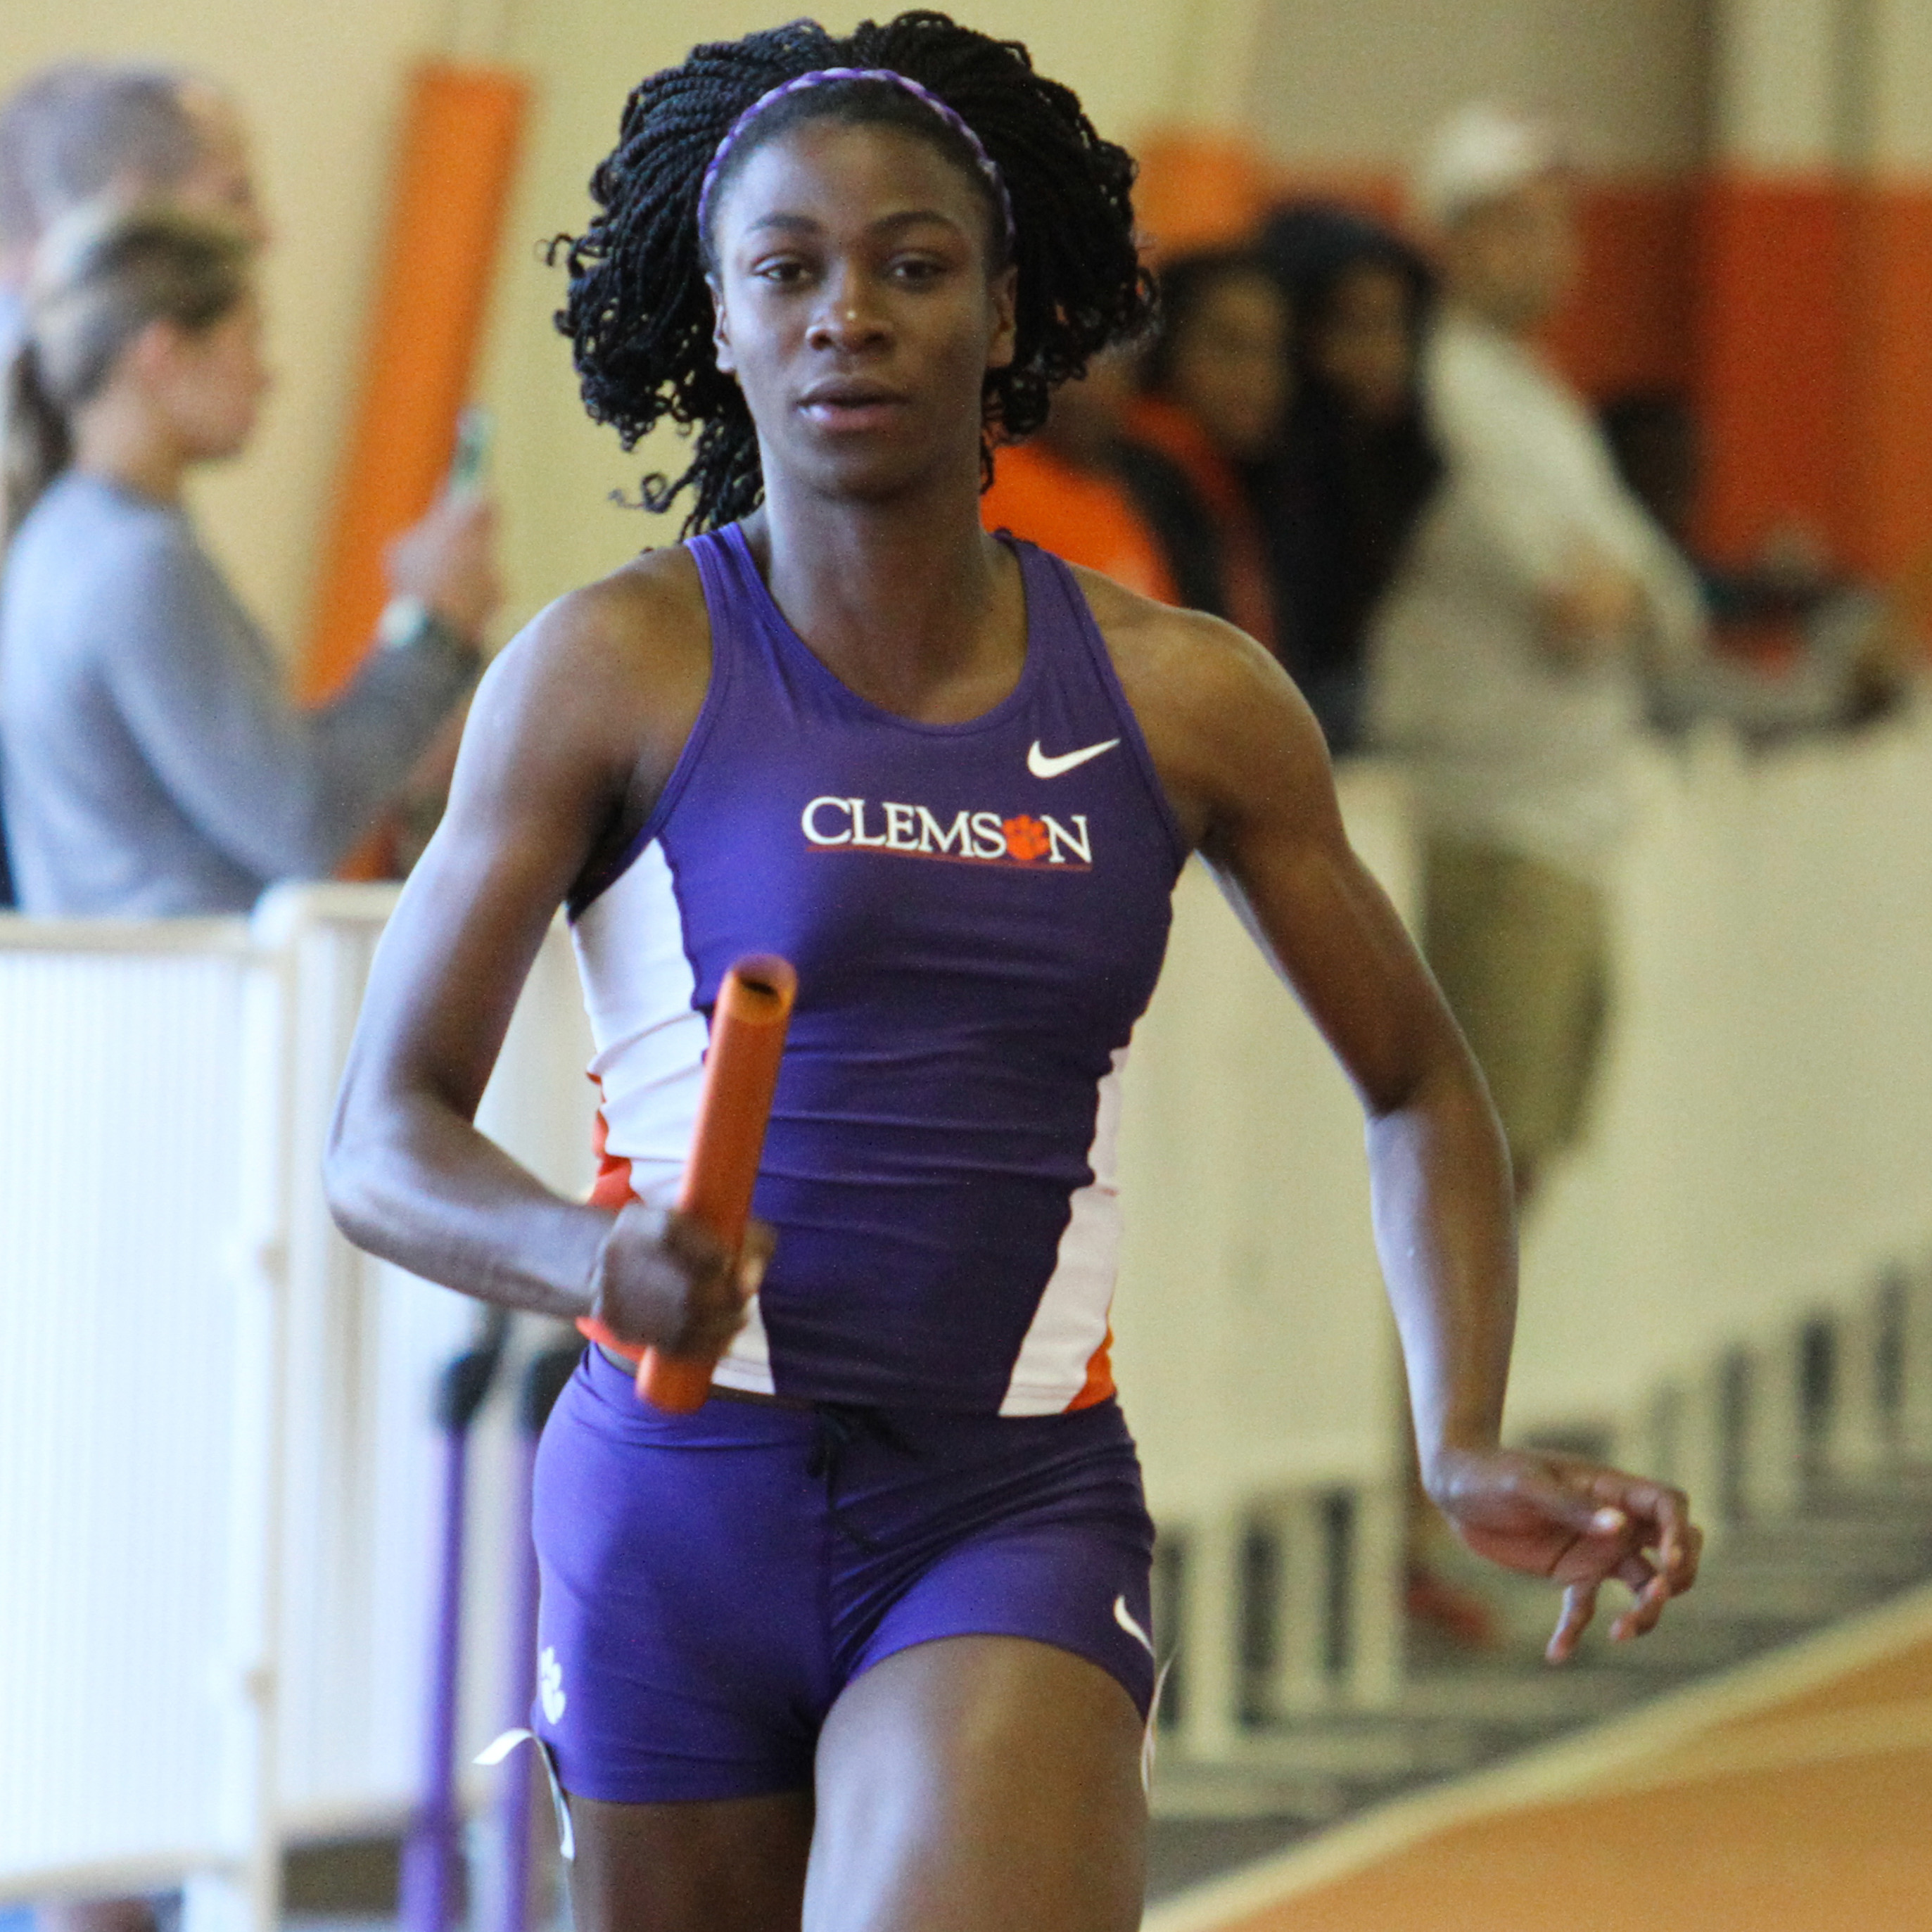 Clemson 4x4s Shine on Final Day